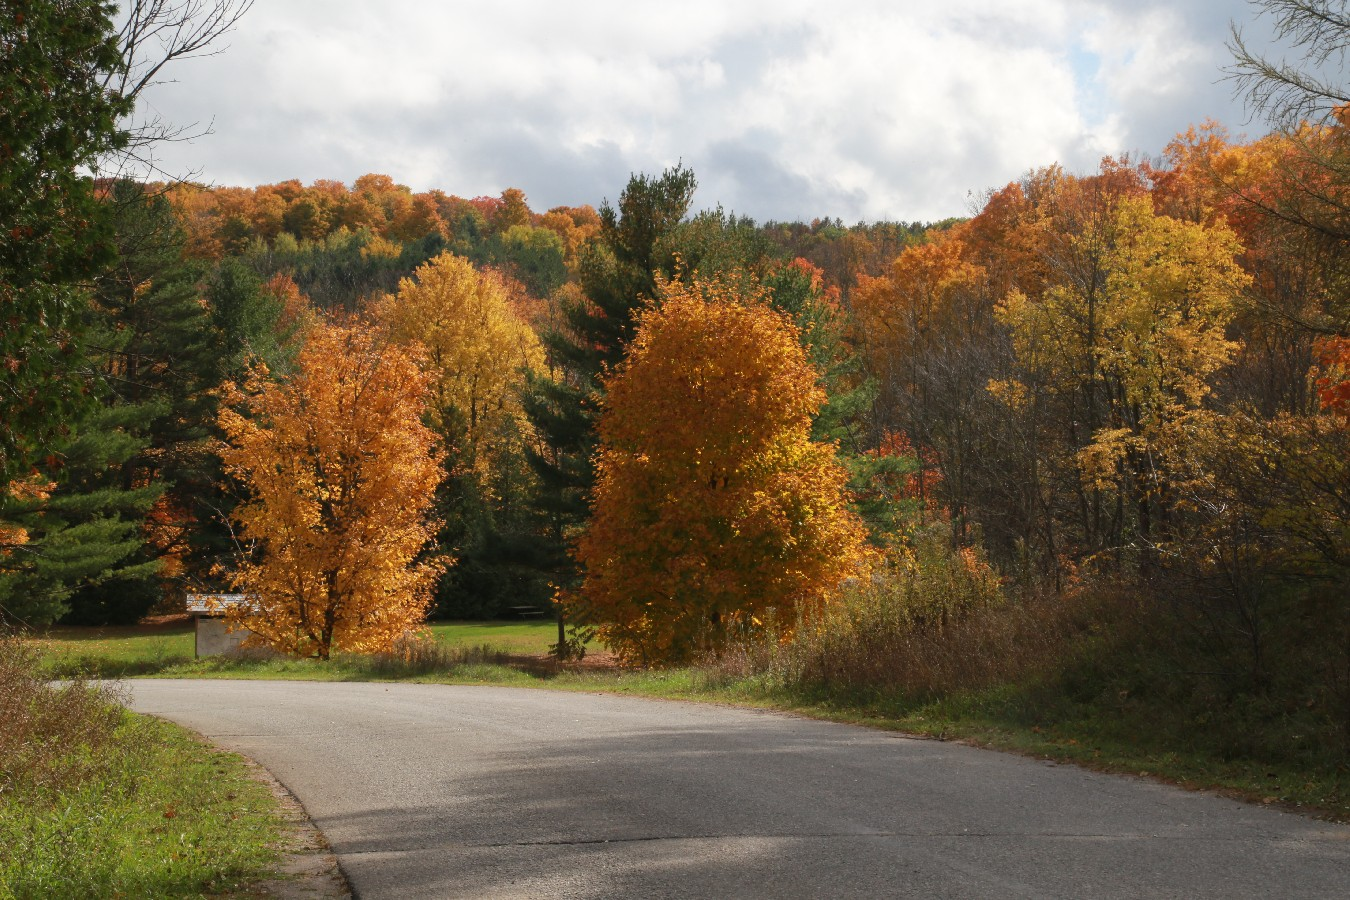 Albion Hills Conservation Area and Campground